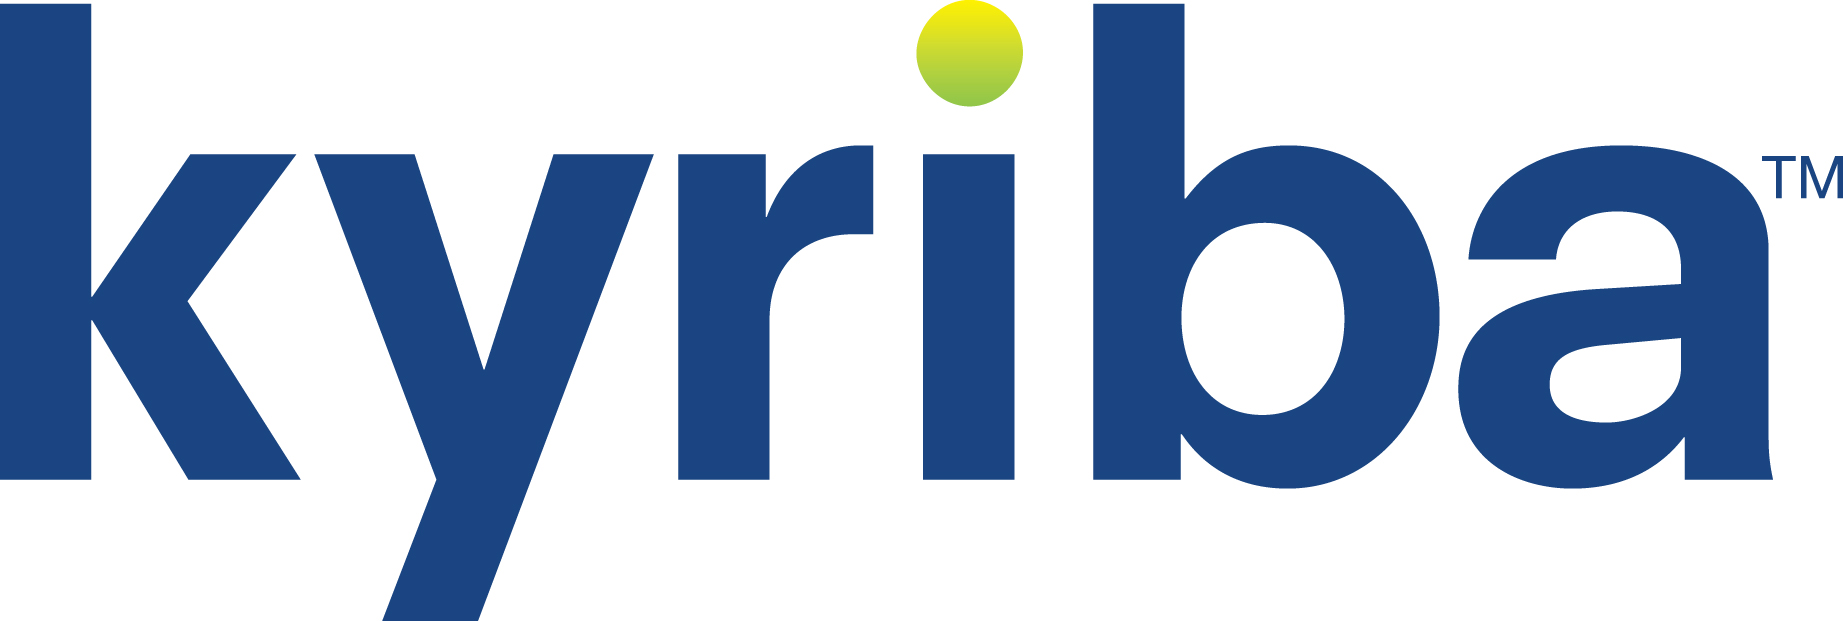 Kyriba Announces Agenda, Headliners for Kyriba Live Treasury & Finance Summit, March 4-8 in Las Vegas